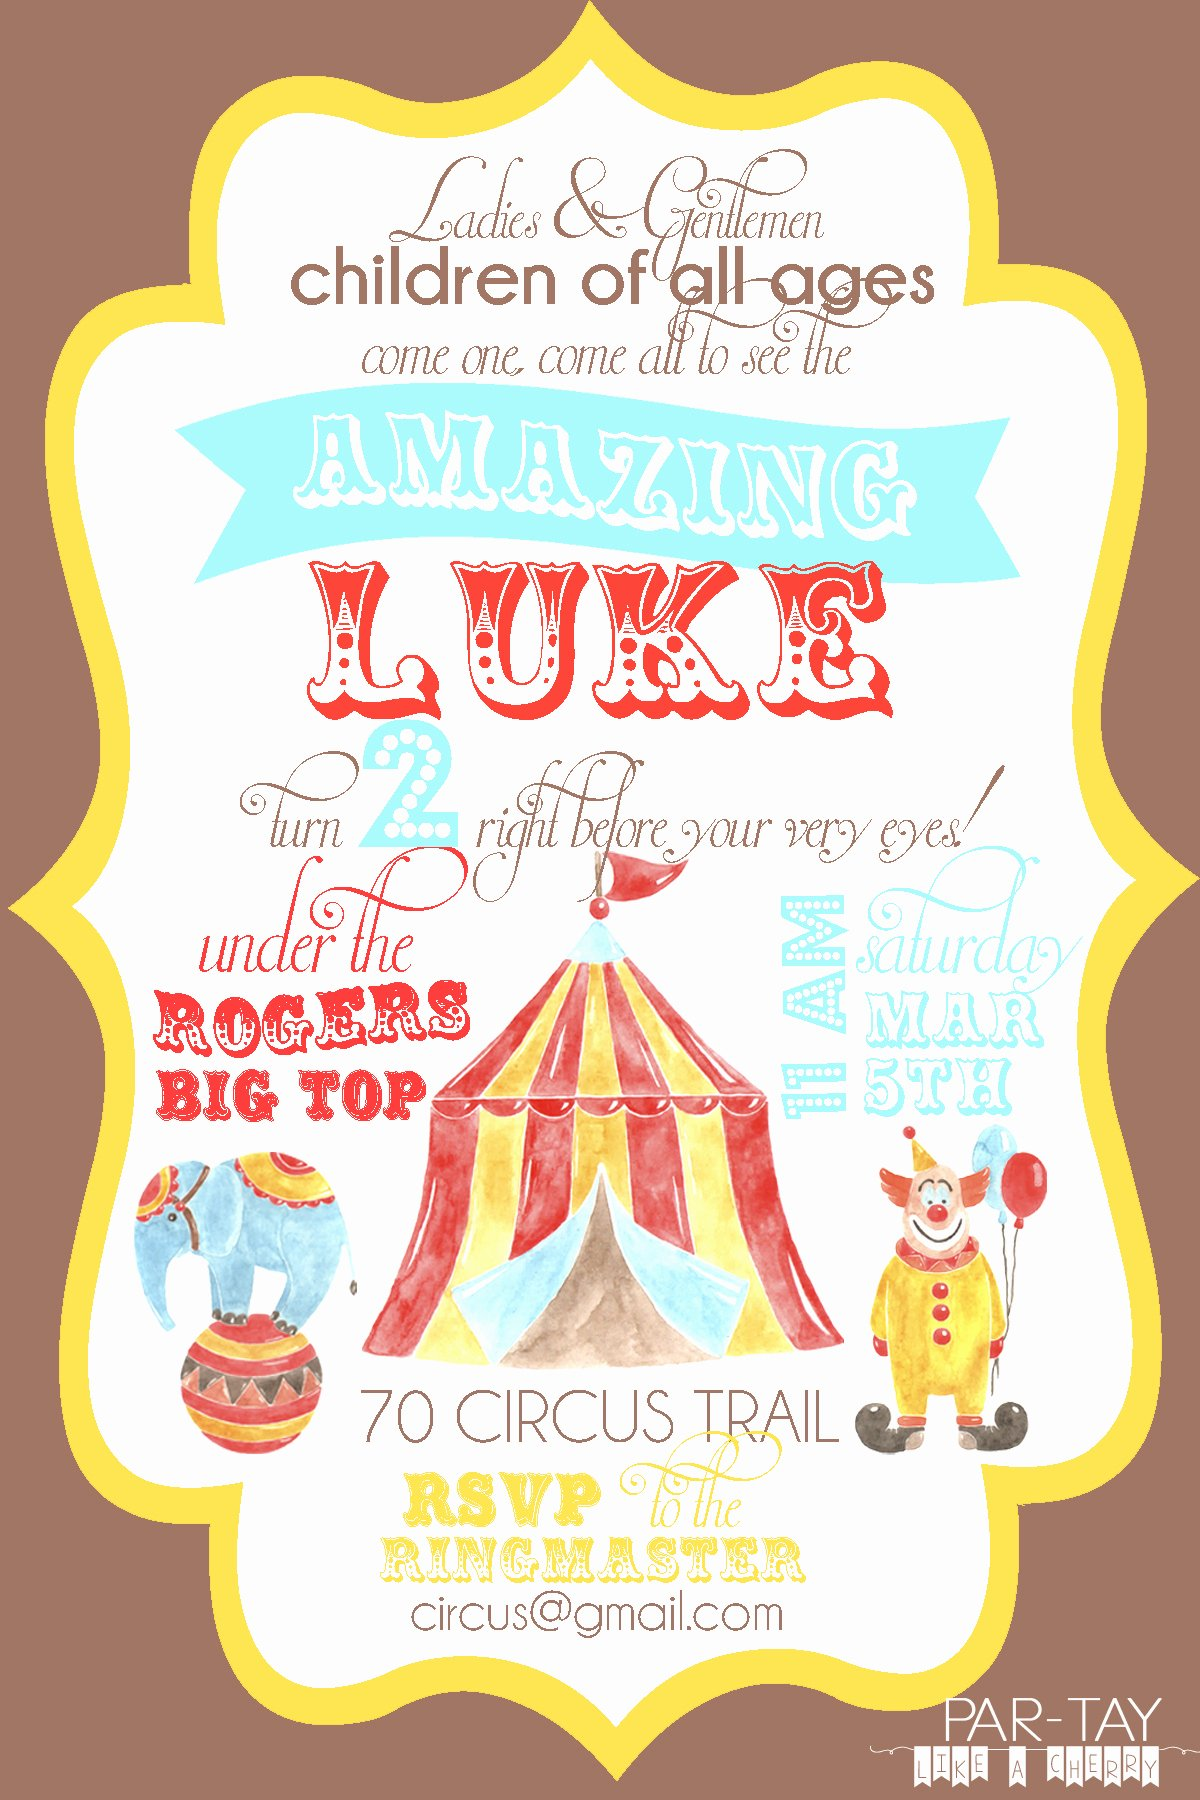 Carnival theme Party Invitations Unique Free Circus Birthday Invitation Party Like A Cherry